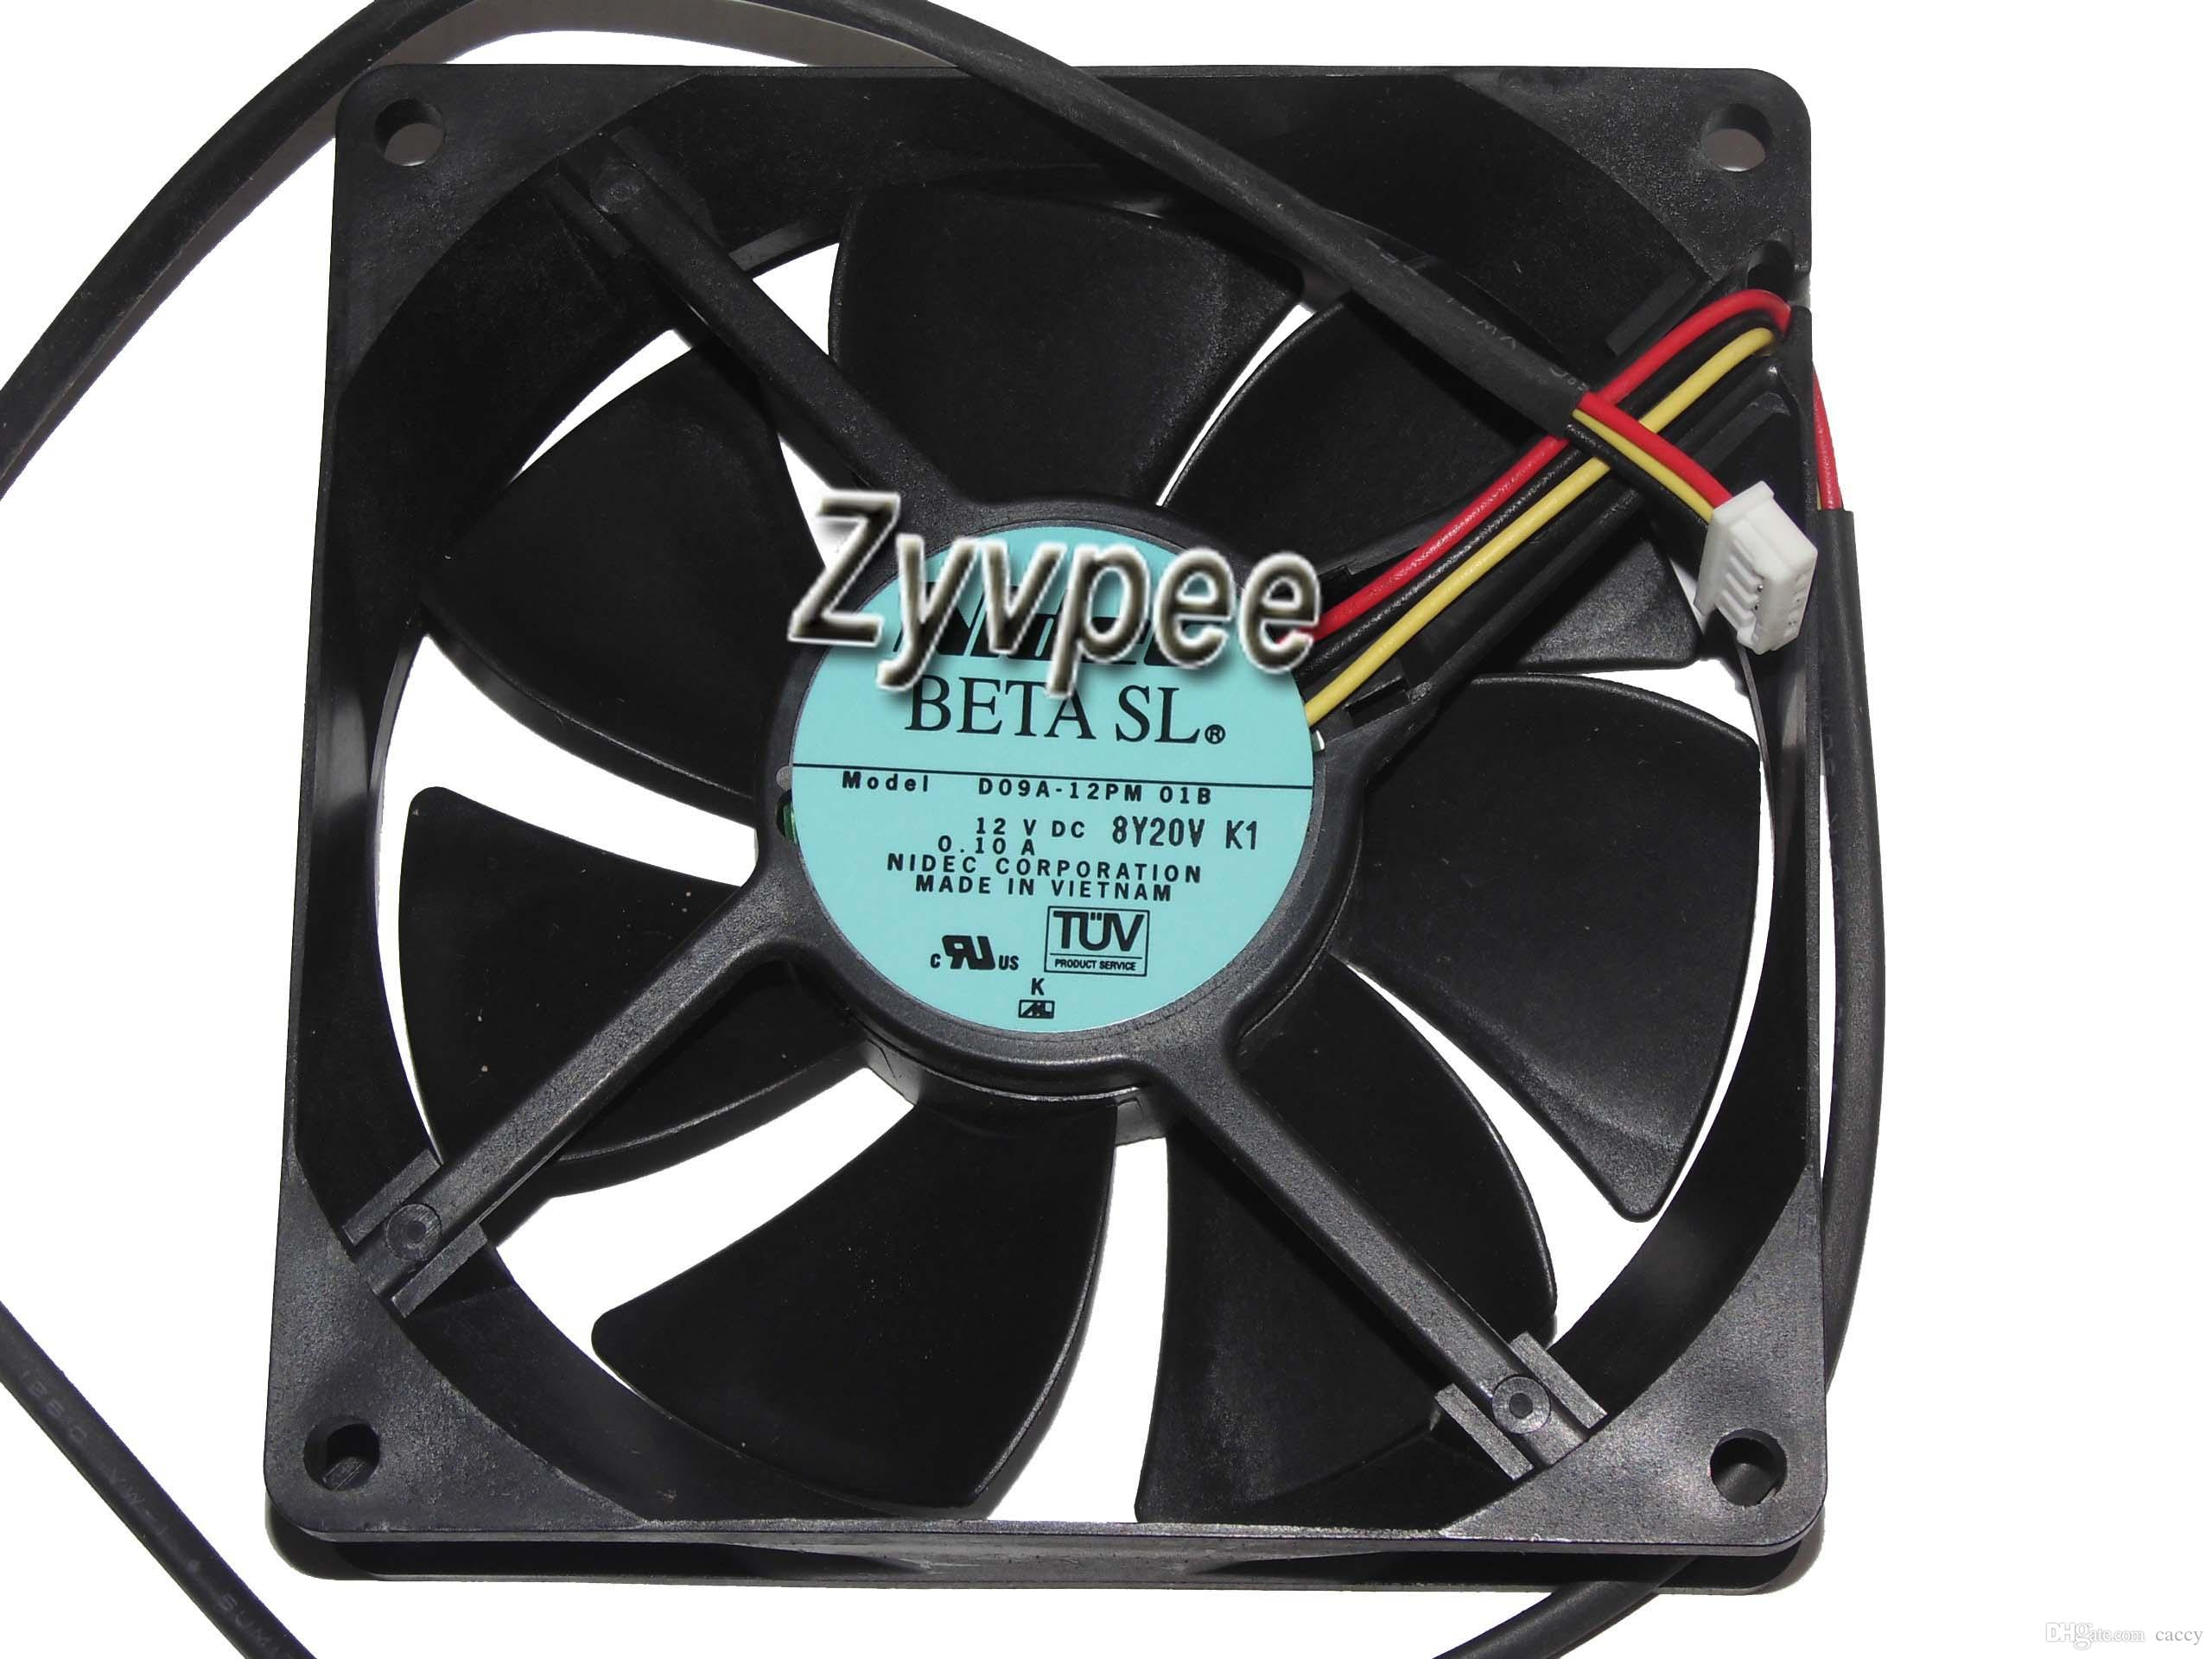 Nidec 90*25mm D09A-12PM 01B 12V 0.1A 3 Wire 3 pins 9cm case fan,cooling fan,server cooler